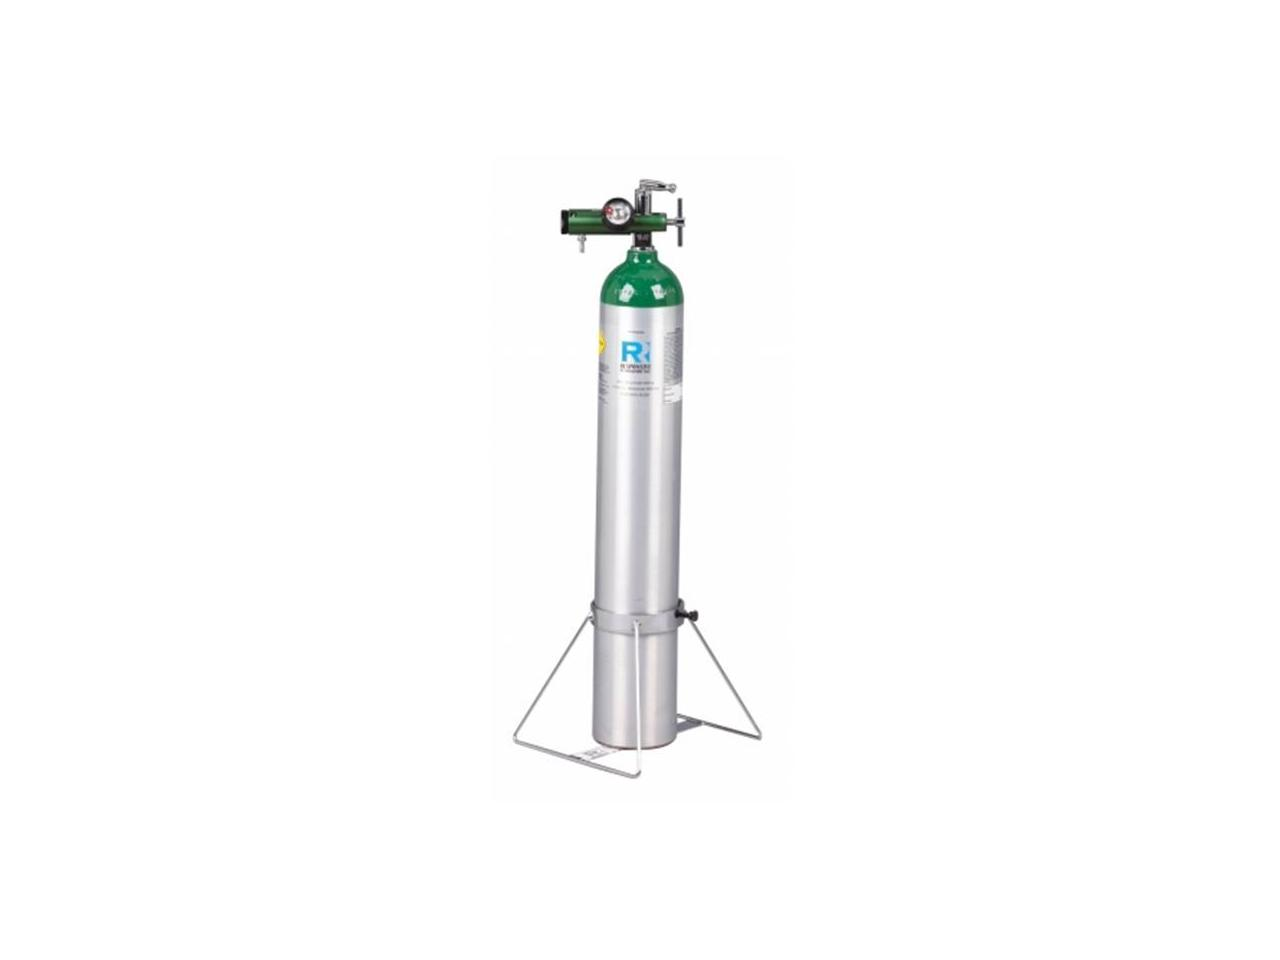 pressedgascylindersizes in addition 7C 7C  acclaimimages   7C gallery 7C images n300 7Coxygen tank together with Bulk Liquid Storage Delivery additionally 2014 04 22 in addition Oxygen Tank Size C. on medical oxygen tanks duration